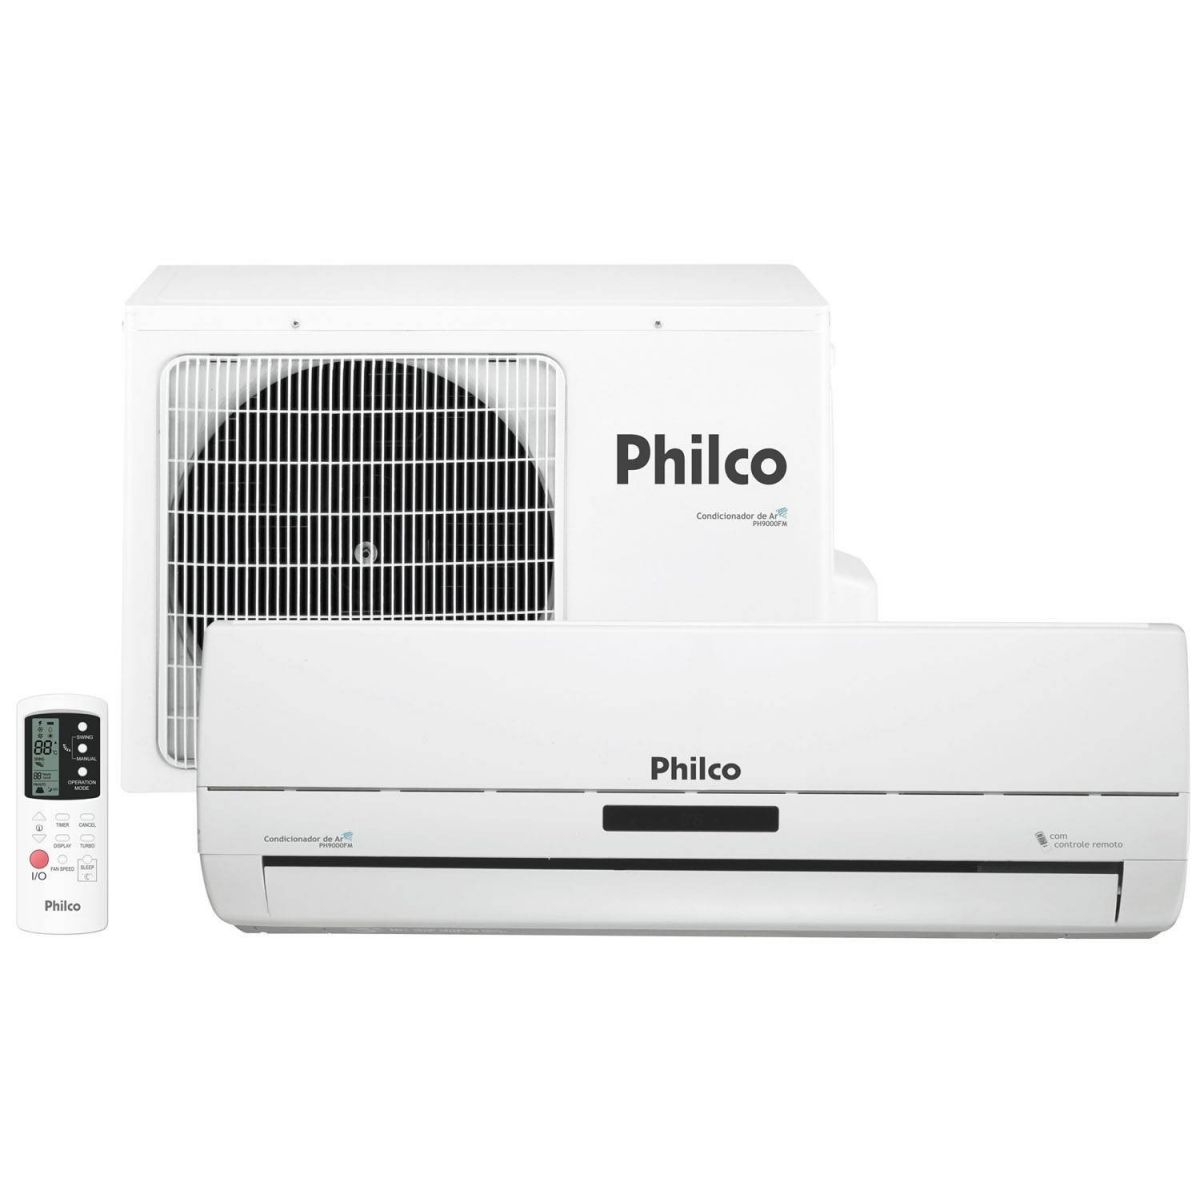 SPLIT HI WALL 9000 BTUS Q/F PHILCO